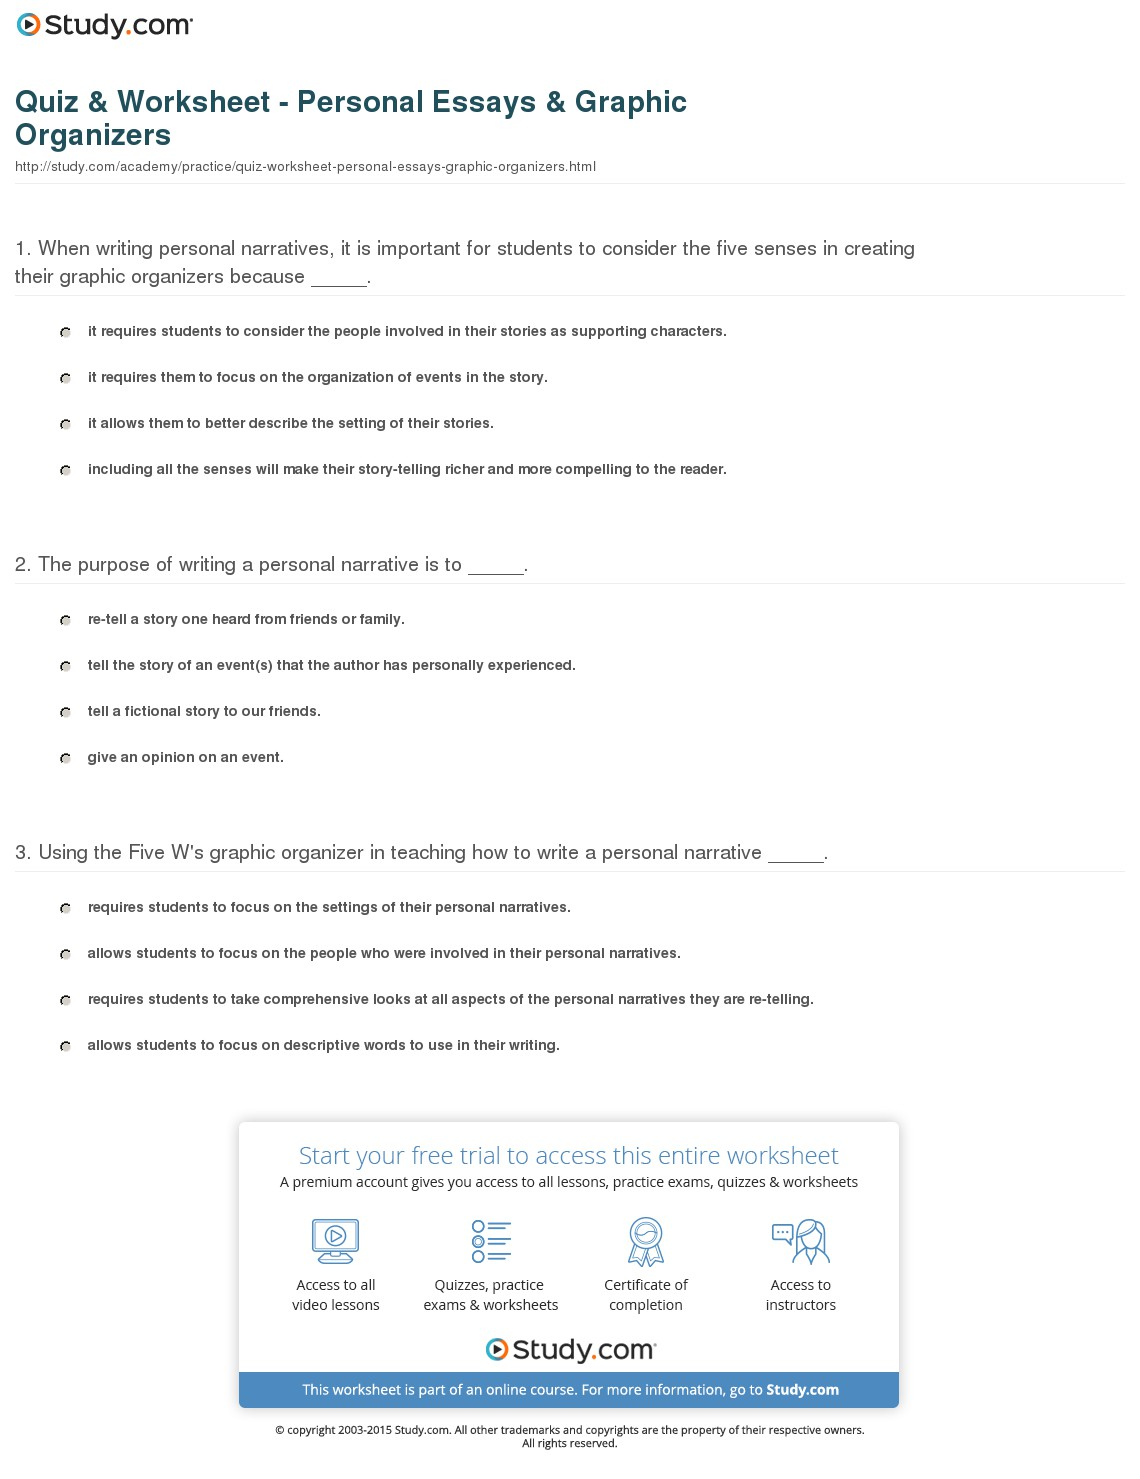 028 Quiz Worksheet Personal Essays Graphics Essay Example Narrative Incredible Graphic Organizer Middle School Pdf Story Full